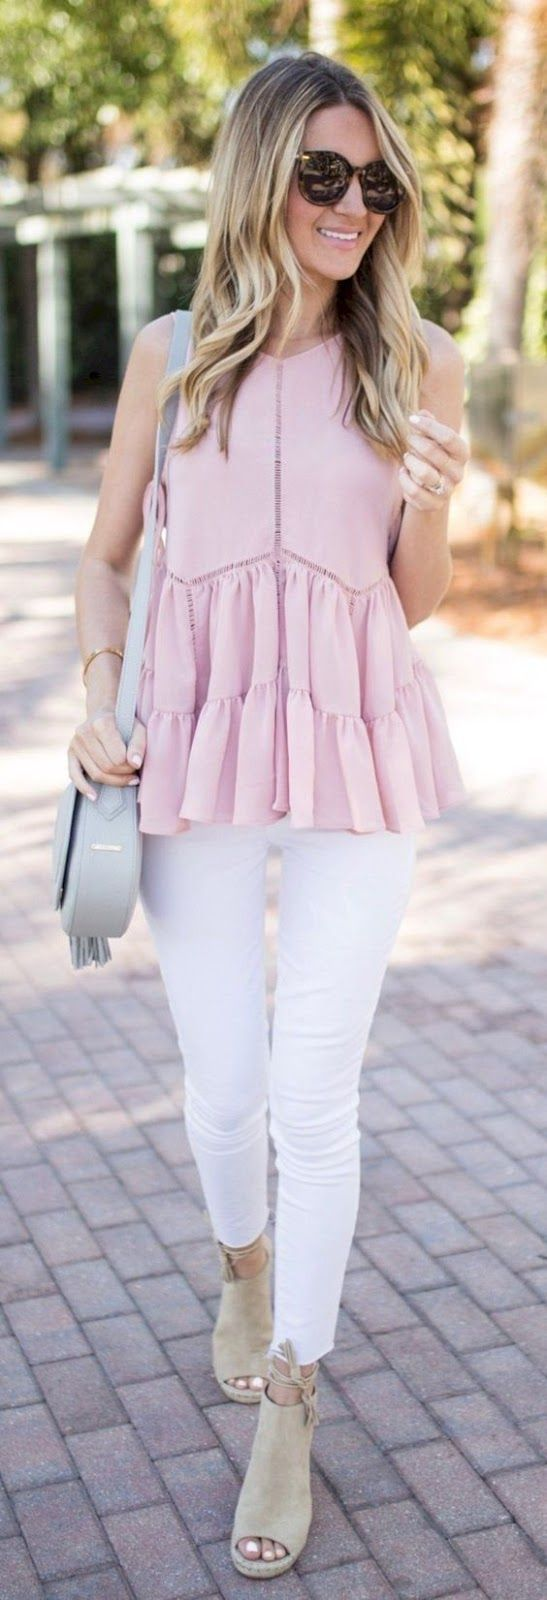 96c7787a4f9c3 52 Fabulous Summer Outfit Ideas in the Street | Fashion | Fashion ...